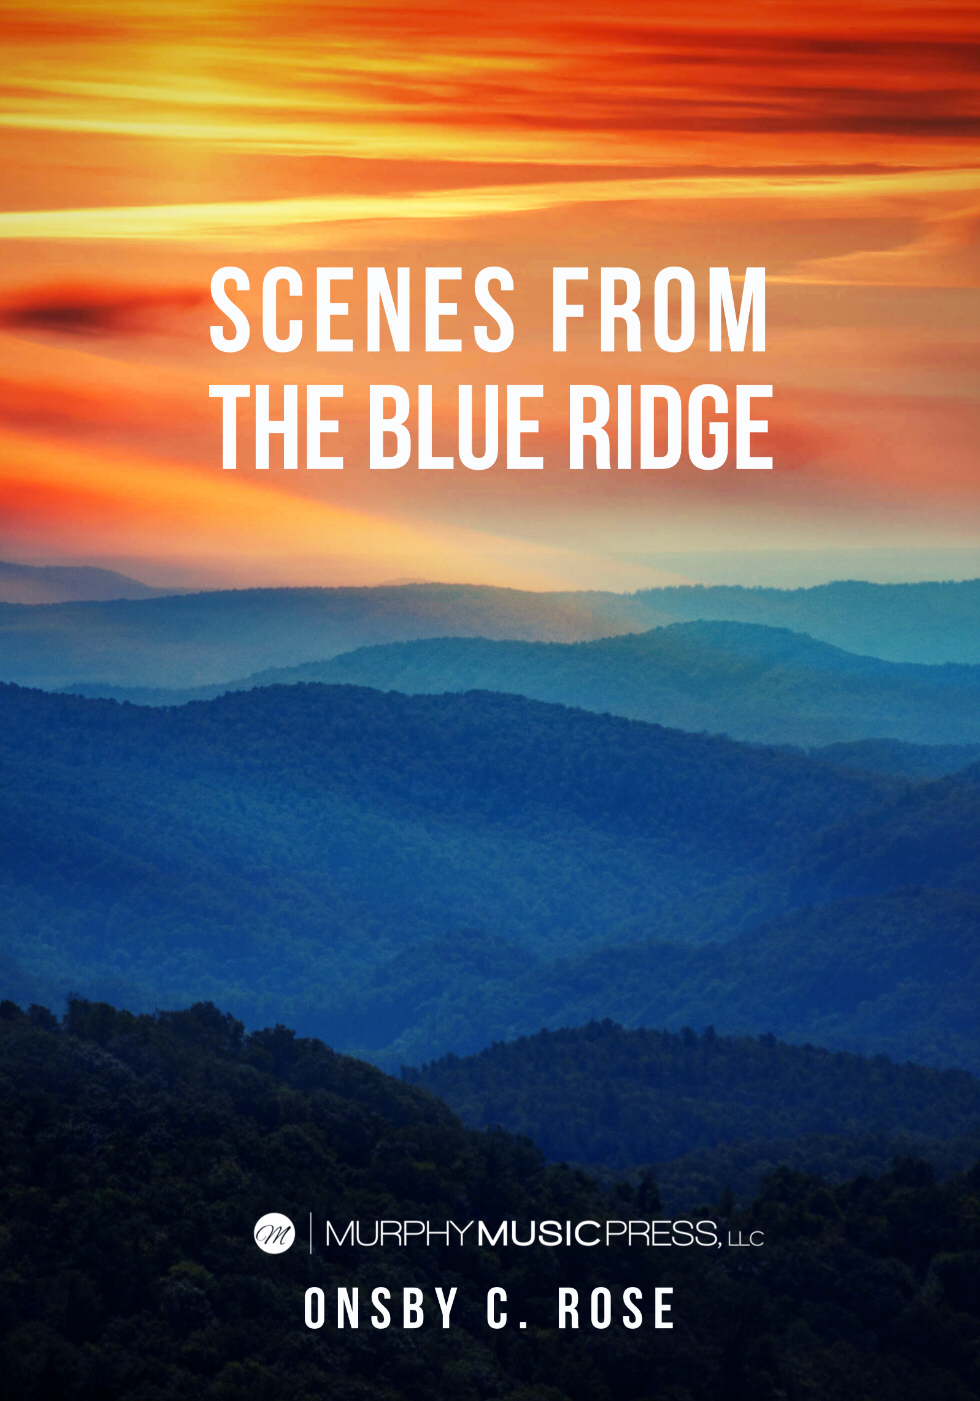 Scenes From The Blue Ridge (Score Only) by Onsby C. Rose